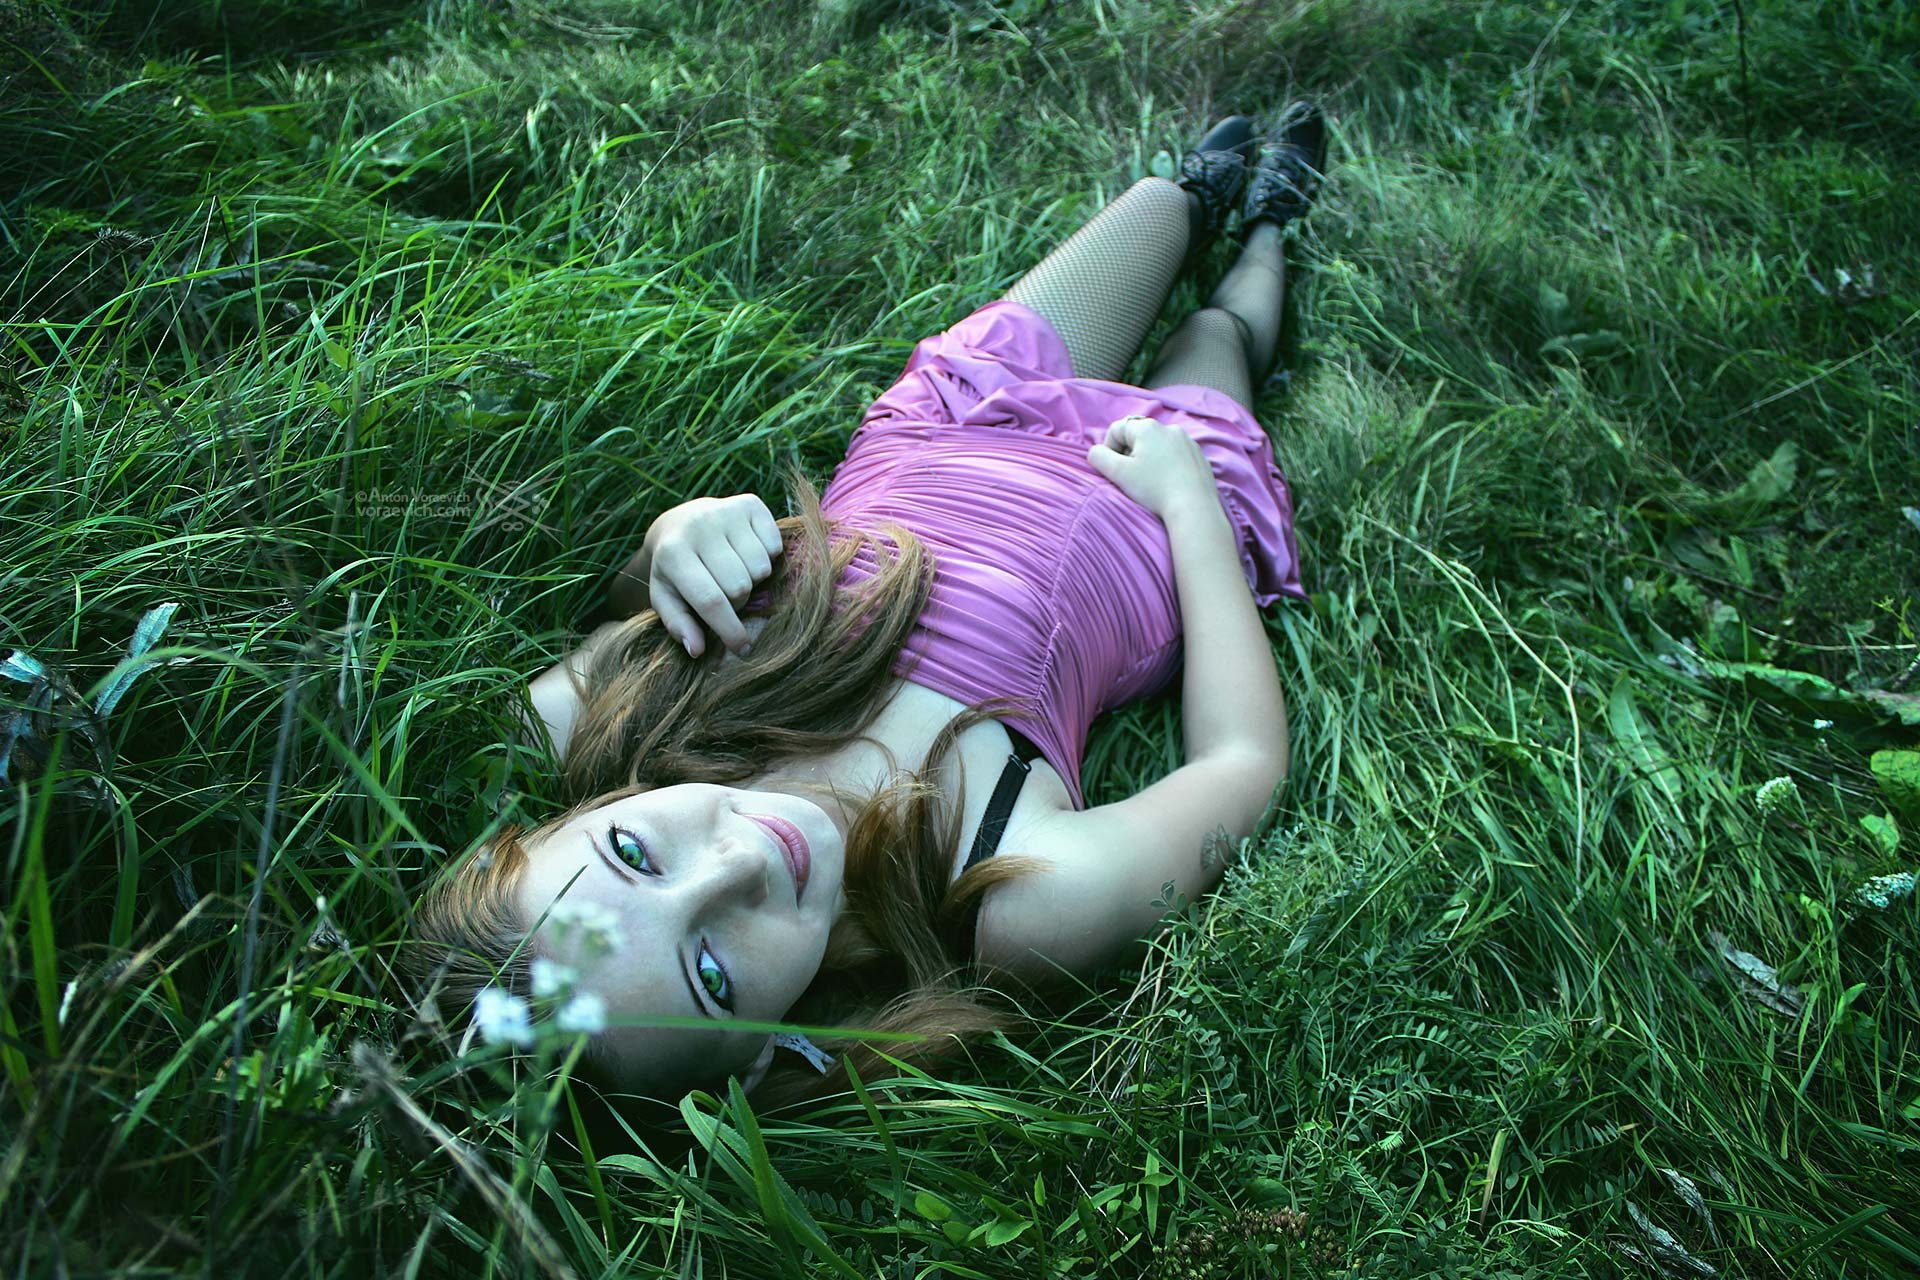 Girl in the grass